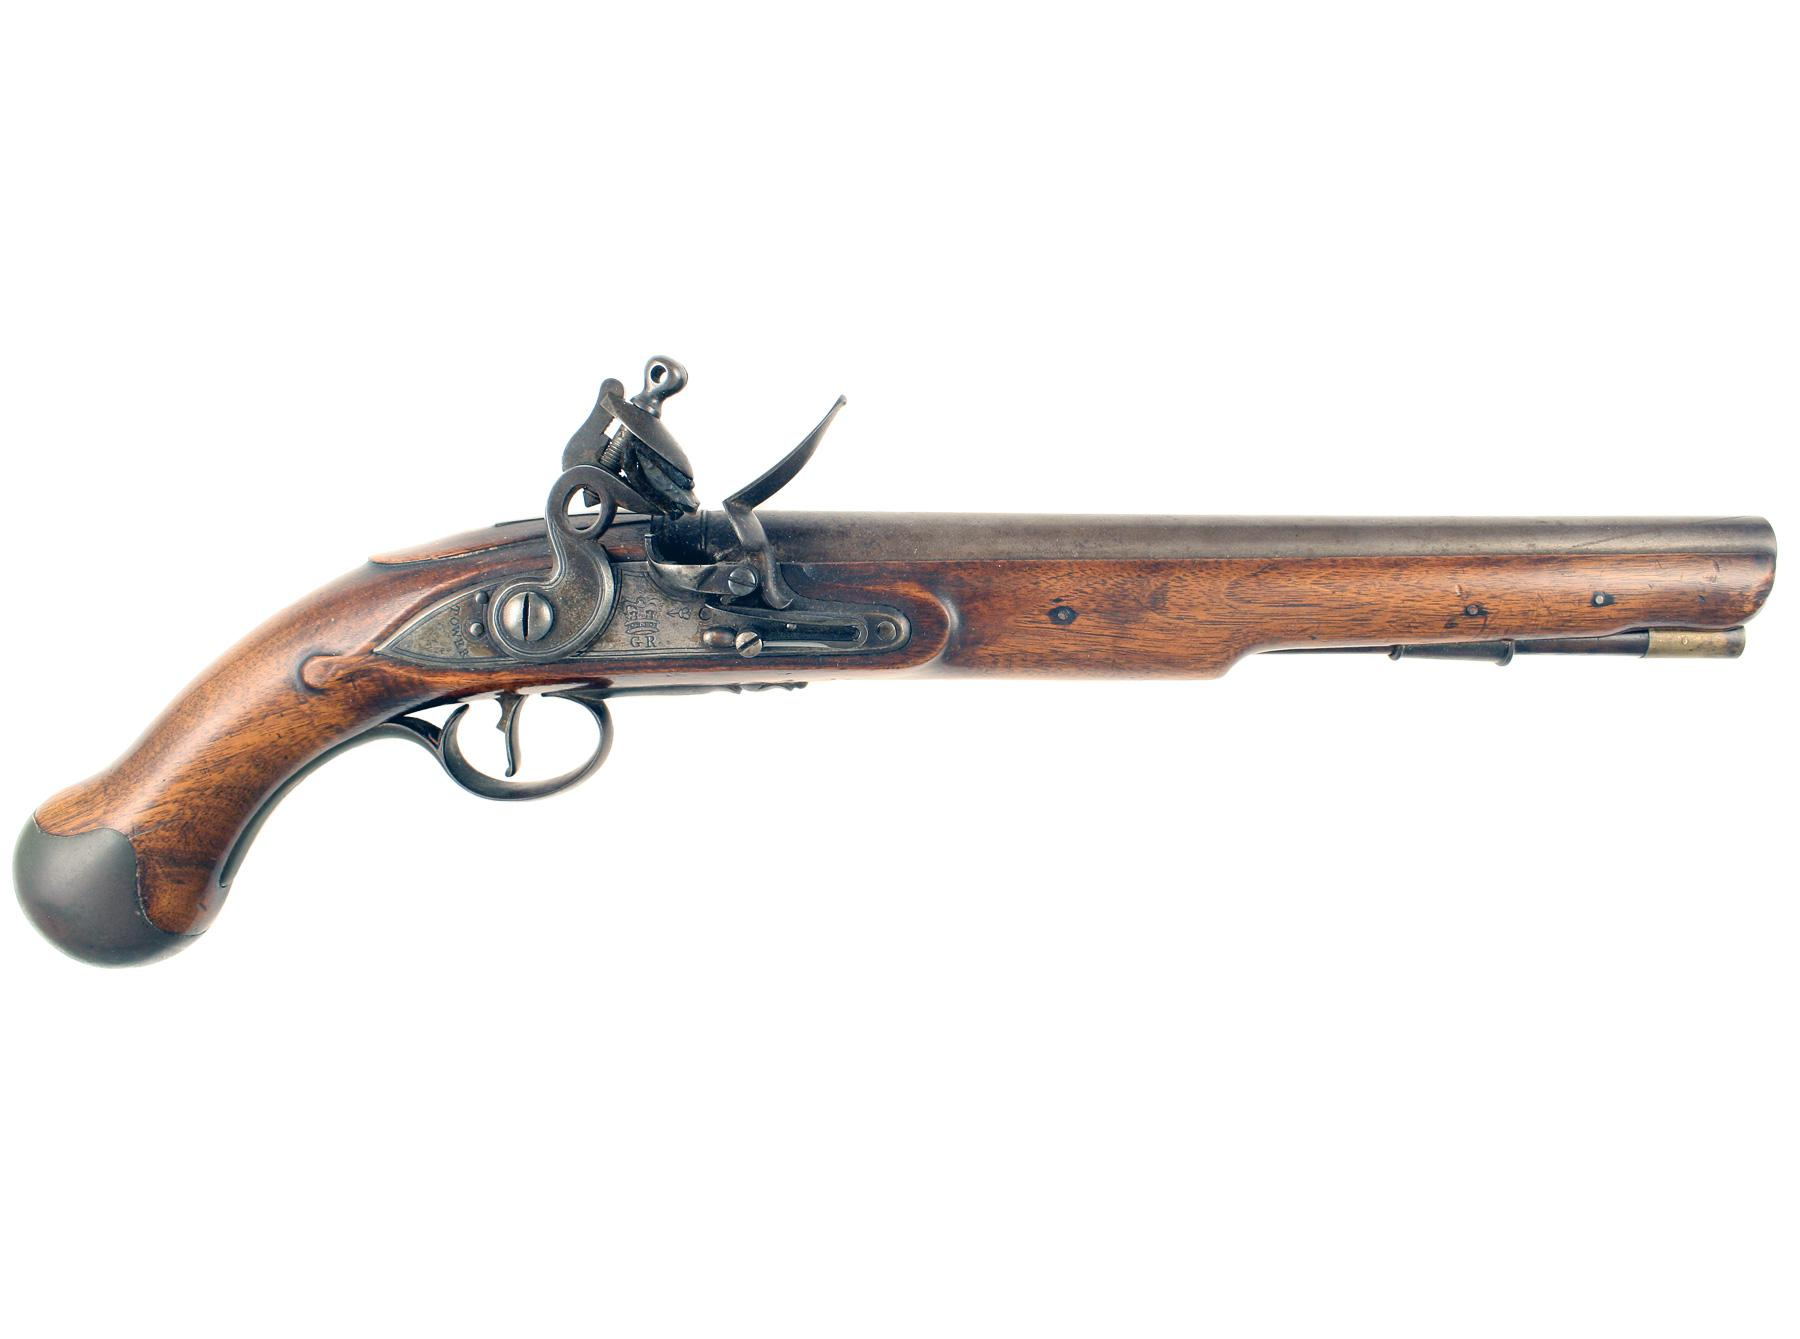 An Outstanding Flintlock Sea Service Pistol